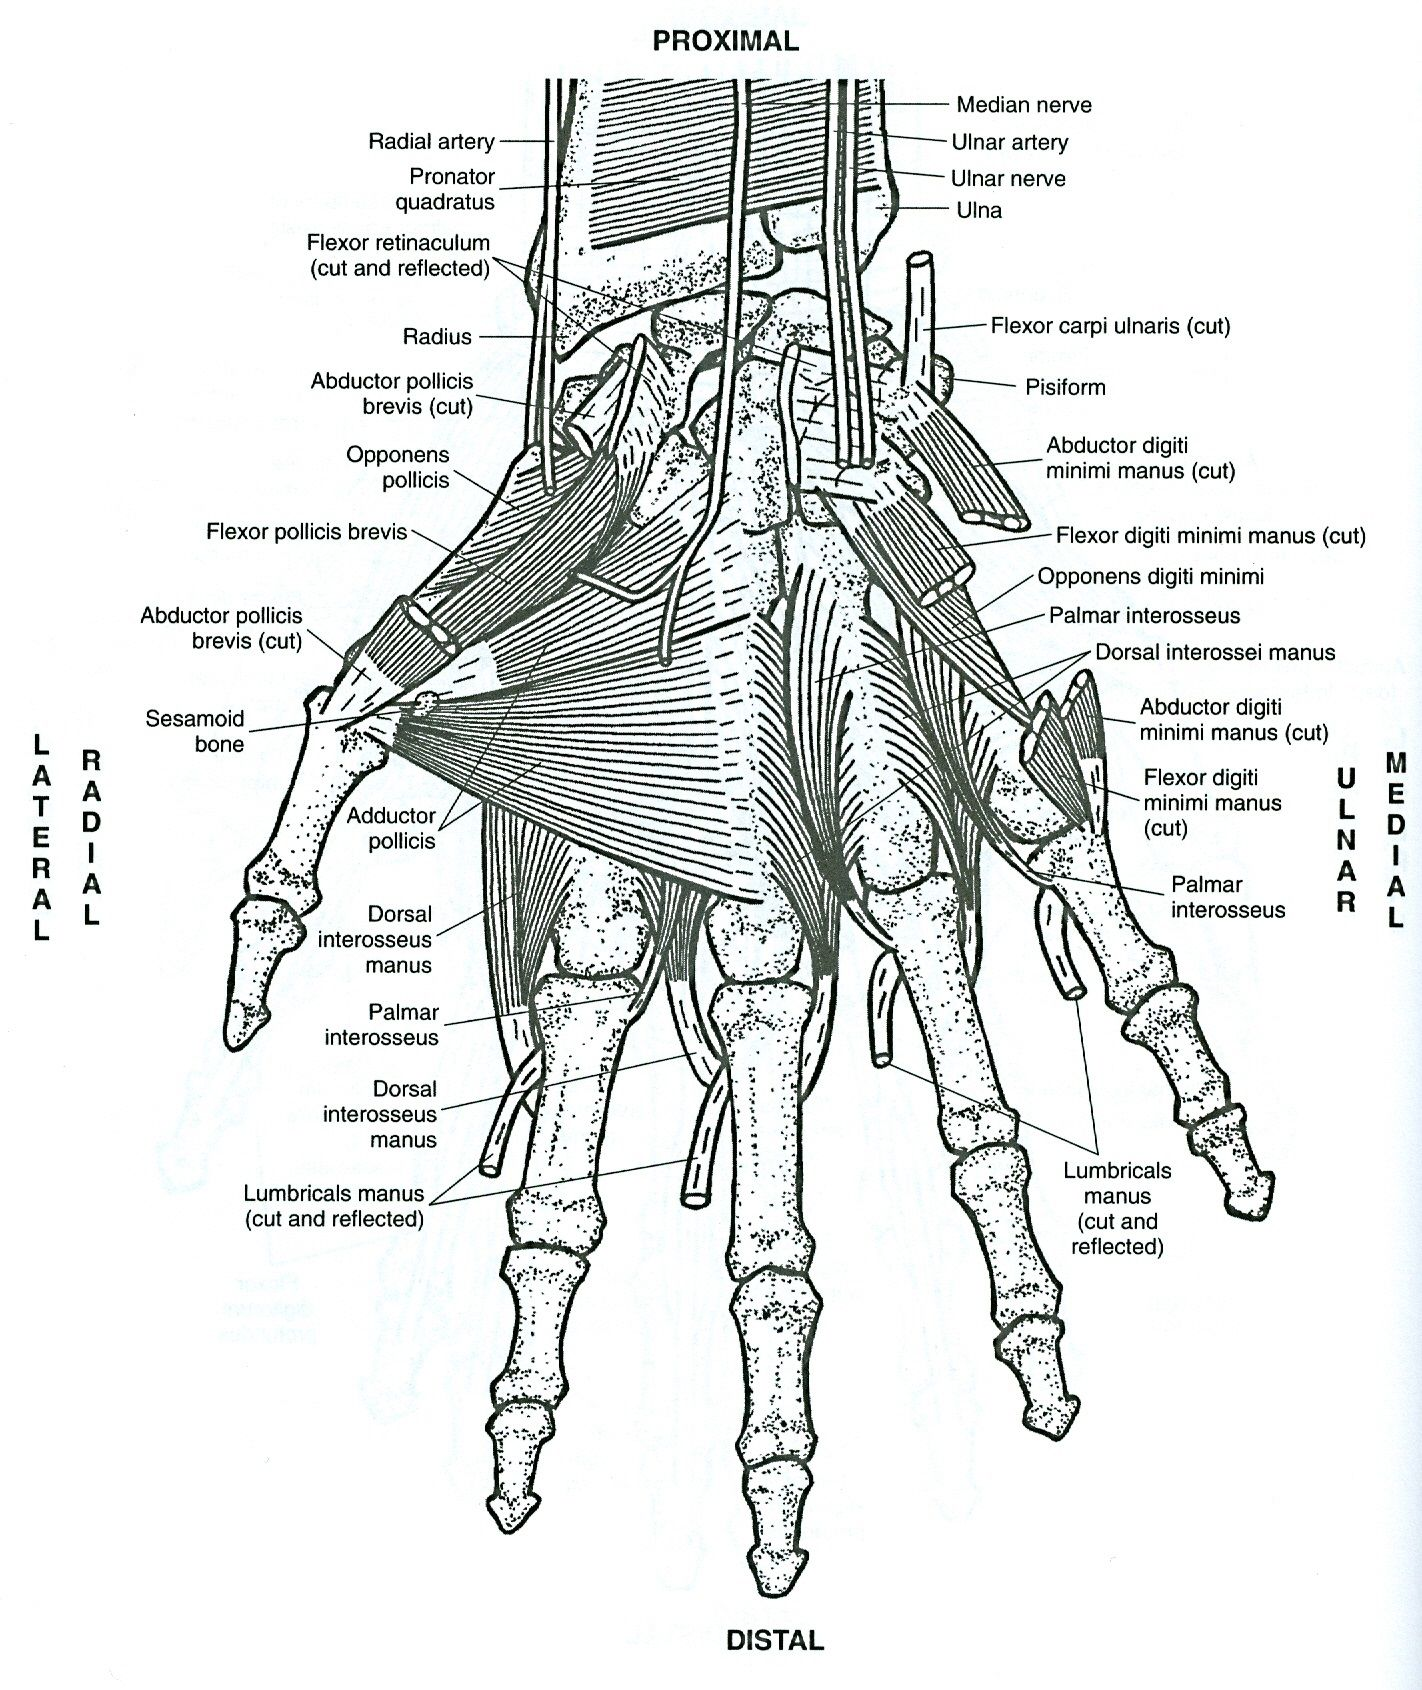 Pin by Rebecca DeJardin on anatomy of muscles | Anatomy coloring ...